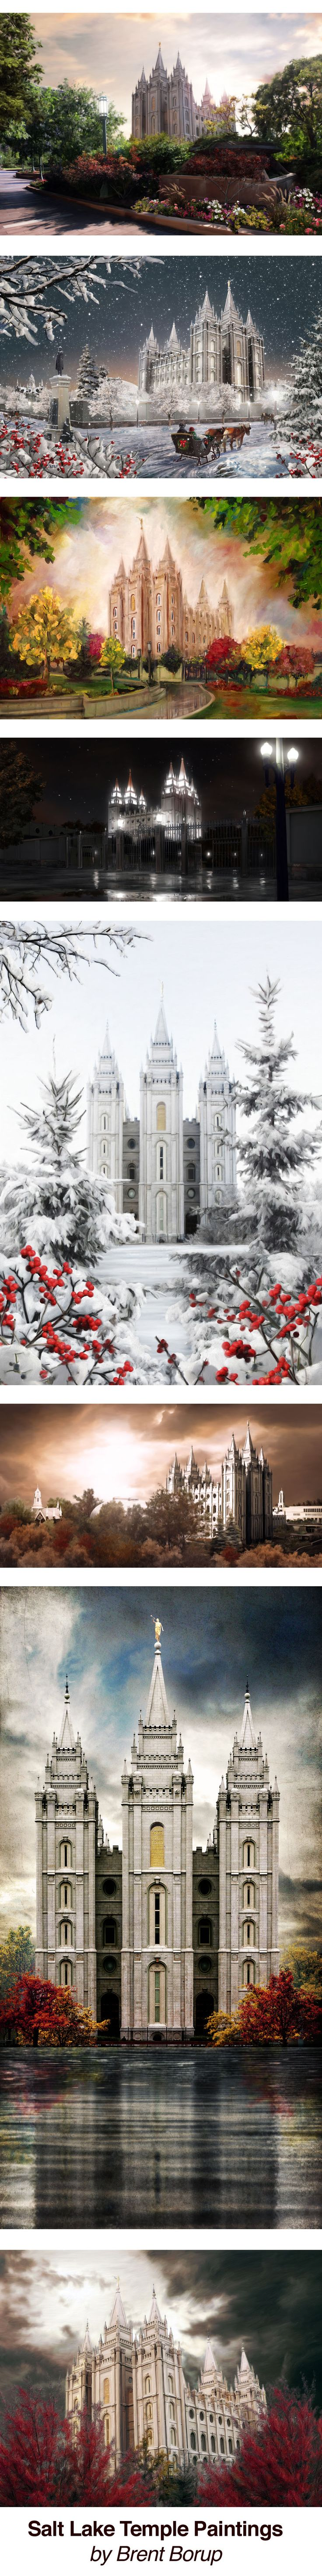 Salt Lake Temple paintings by Brent Borup- sooo pretty!